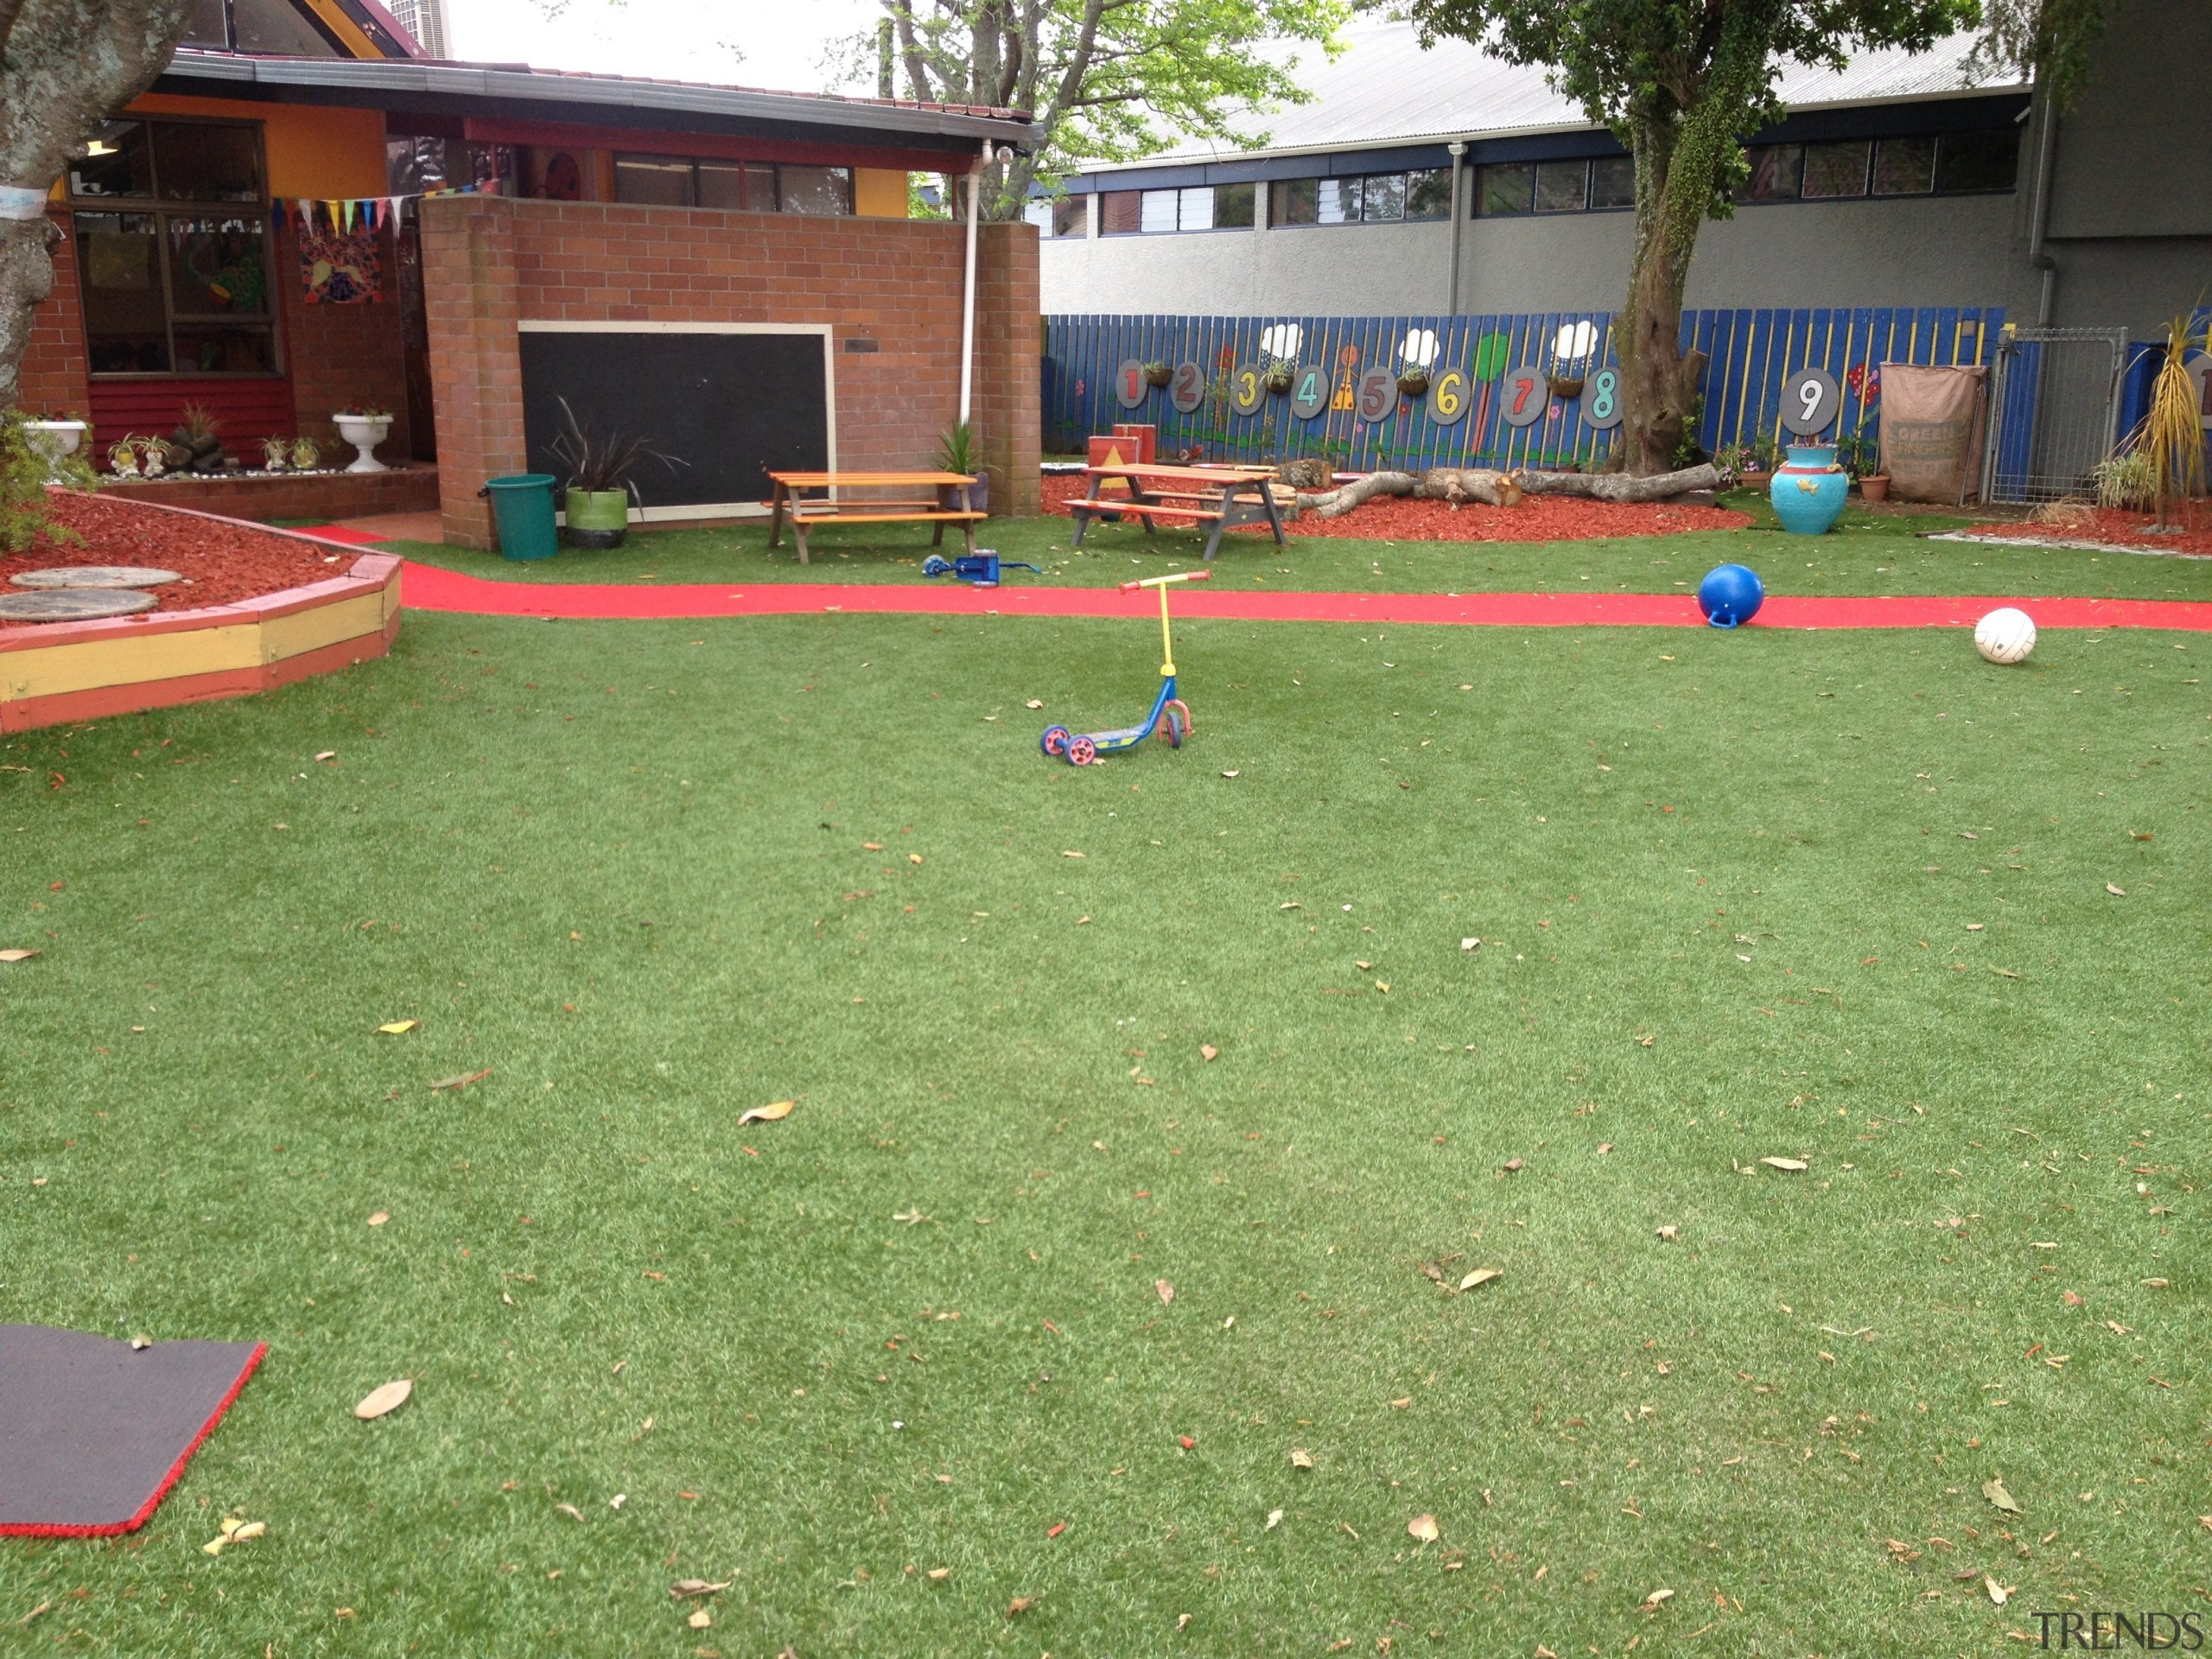 Commercial landscape - artificial turf   games   artificial turf, games, grass, lawn, leisure, outdoor play equipment, plant, play, playground, public space, recreation, sport venue, sports, yard, green